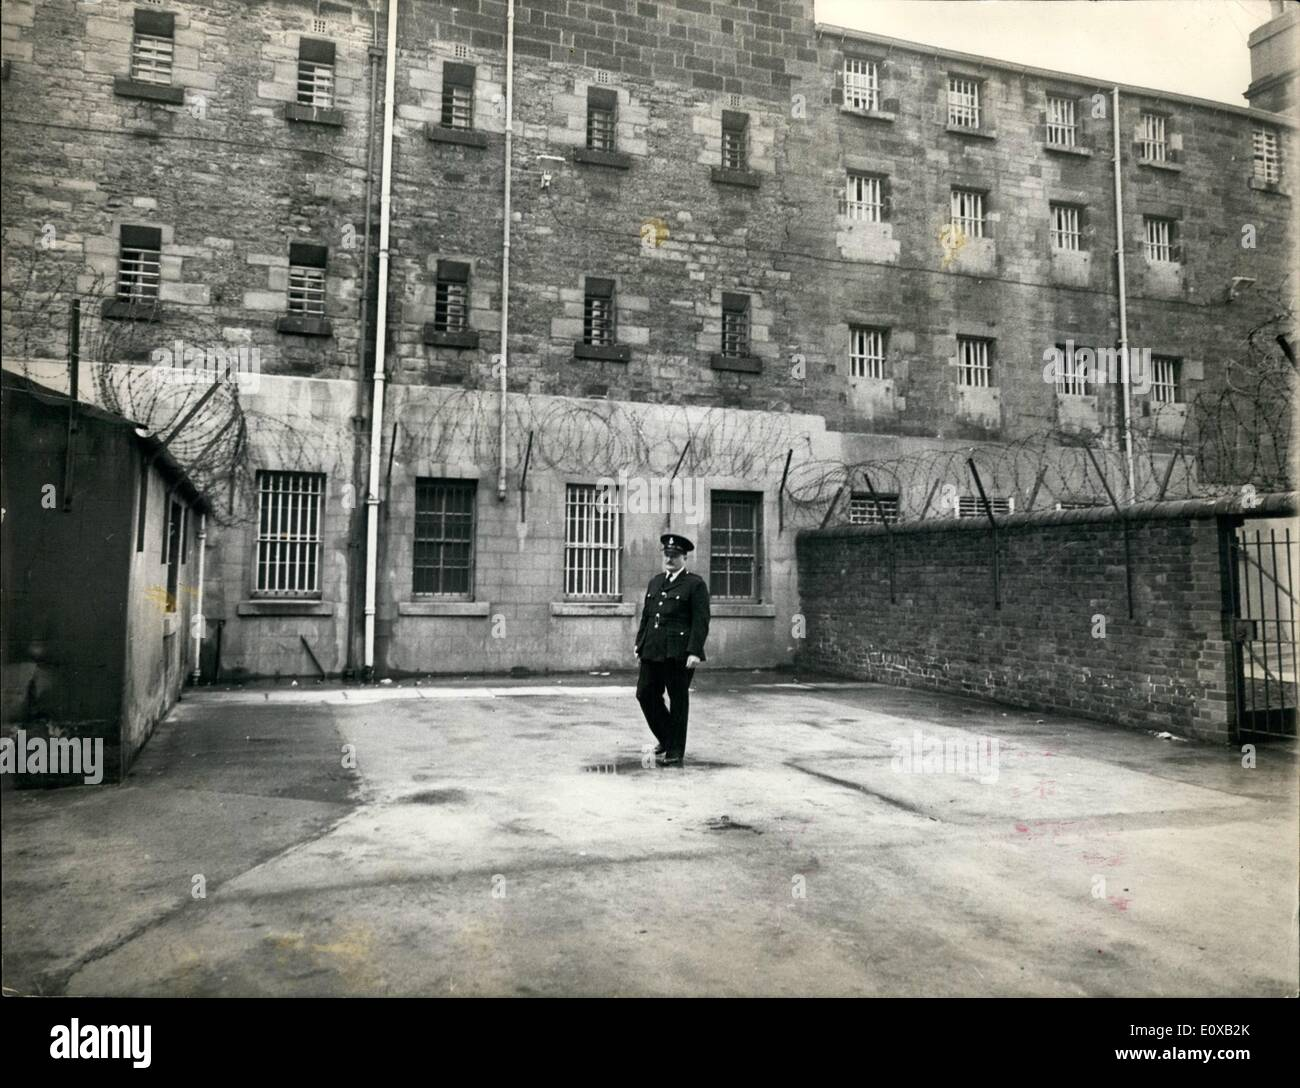 Jan. 01, 1966 - Barbed Wire Walk.: Barbed wire is fixed along walls and to the roof of a building in the exercise yard for prisoners under maximum security at Durham Gaol. The yard is 15-yards by 13-yards. - Stock Image